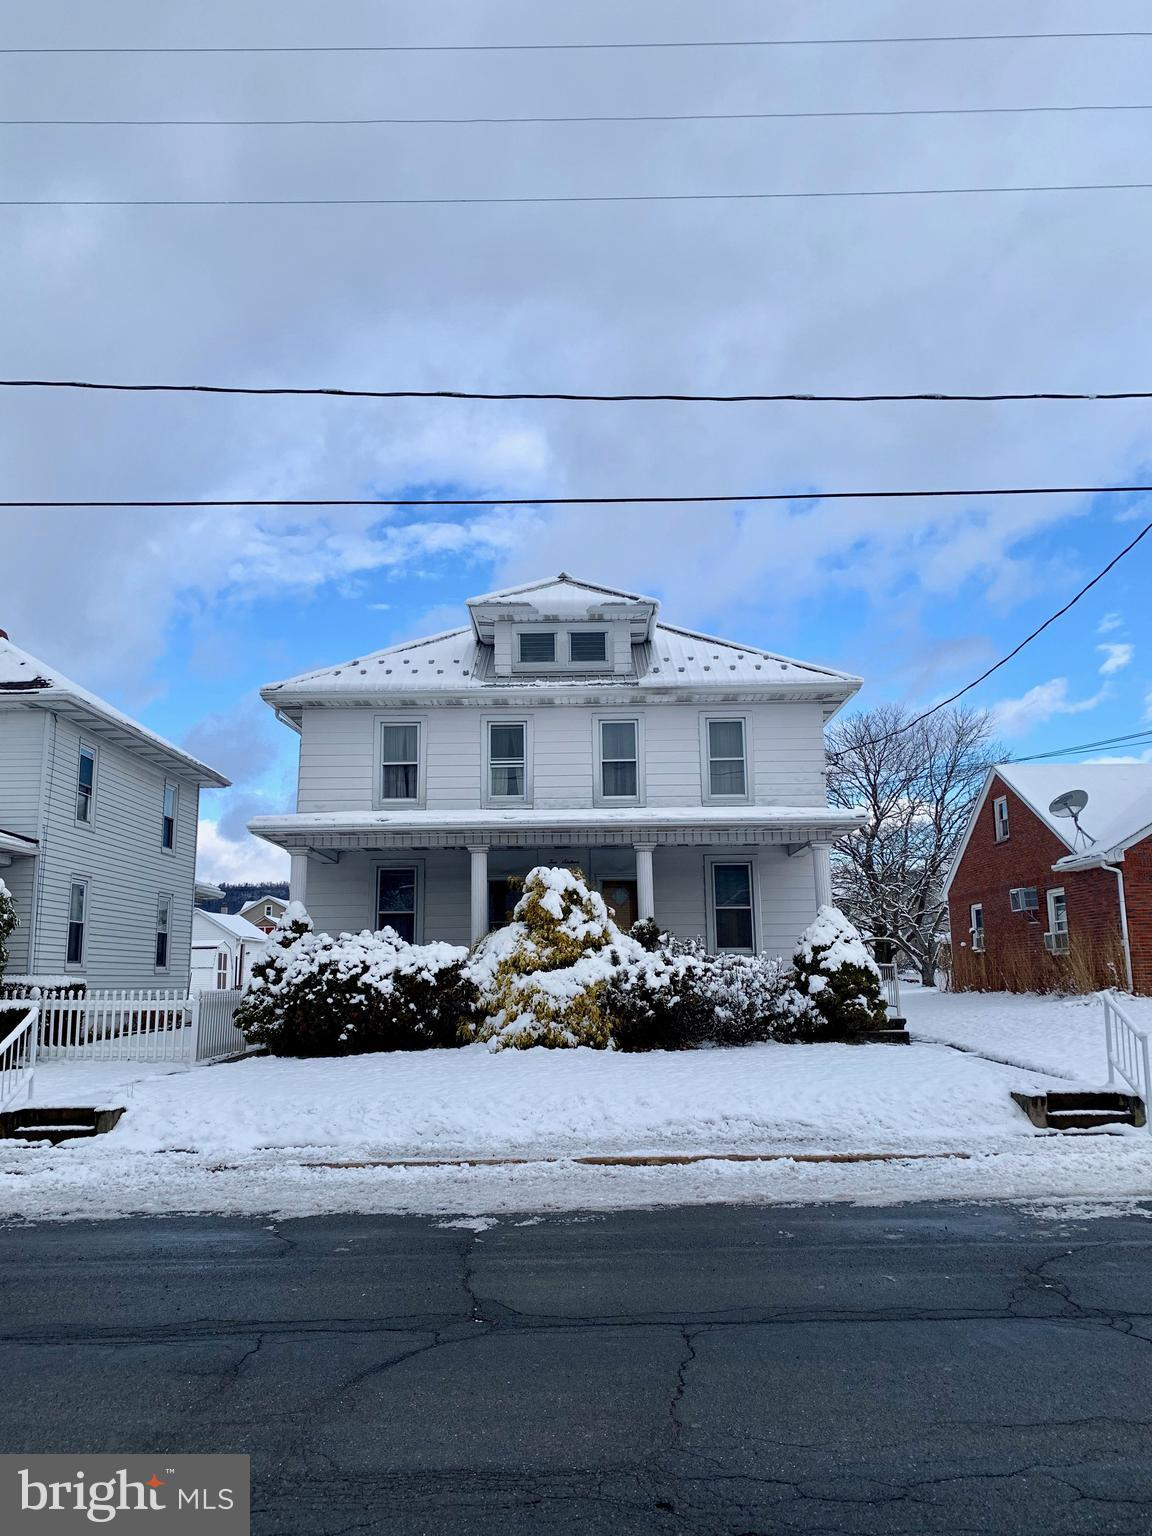 1016 W MAPLE STREET, VALLEY VIEW, PA 17983